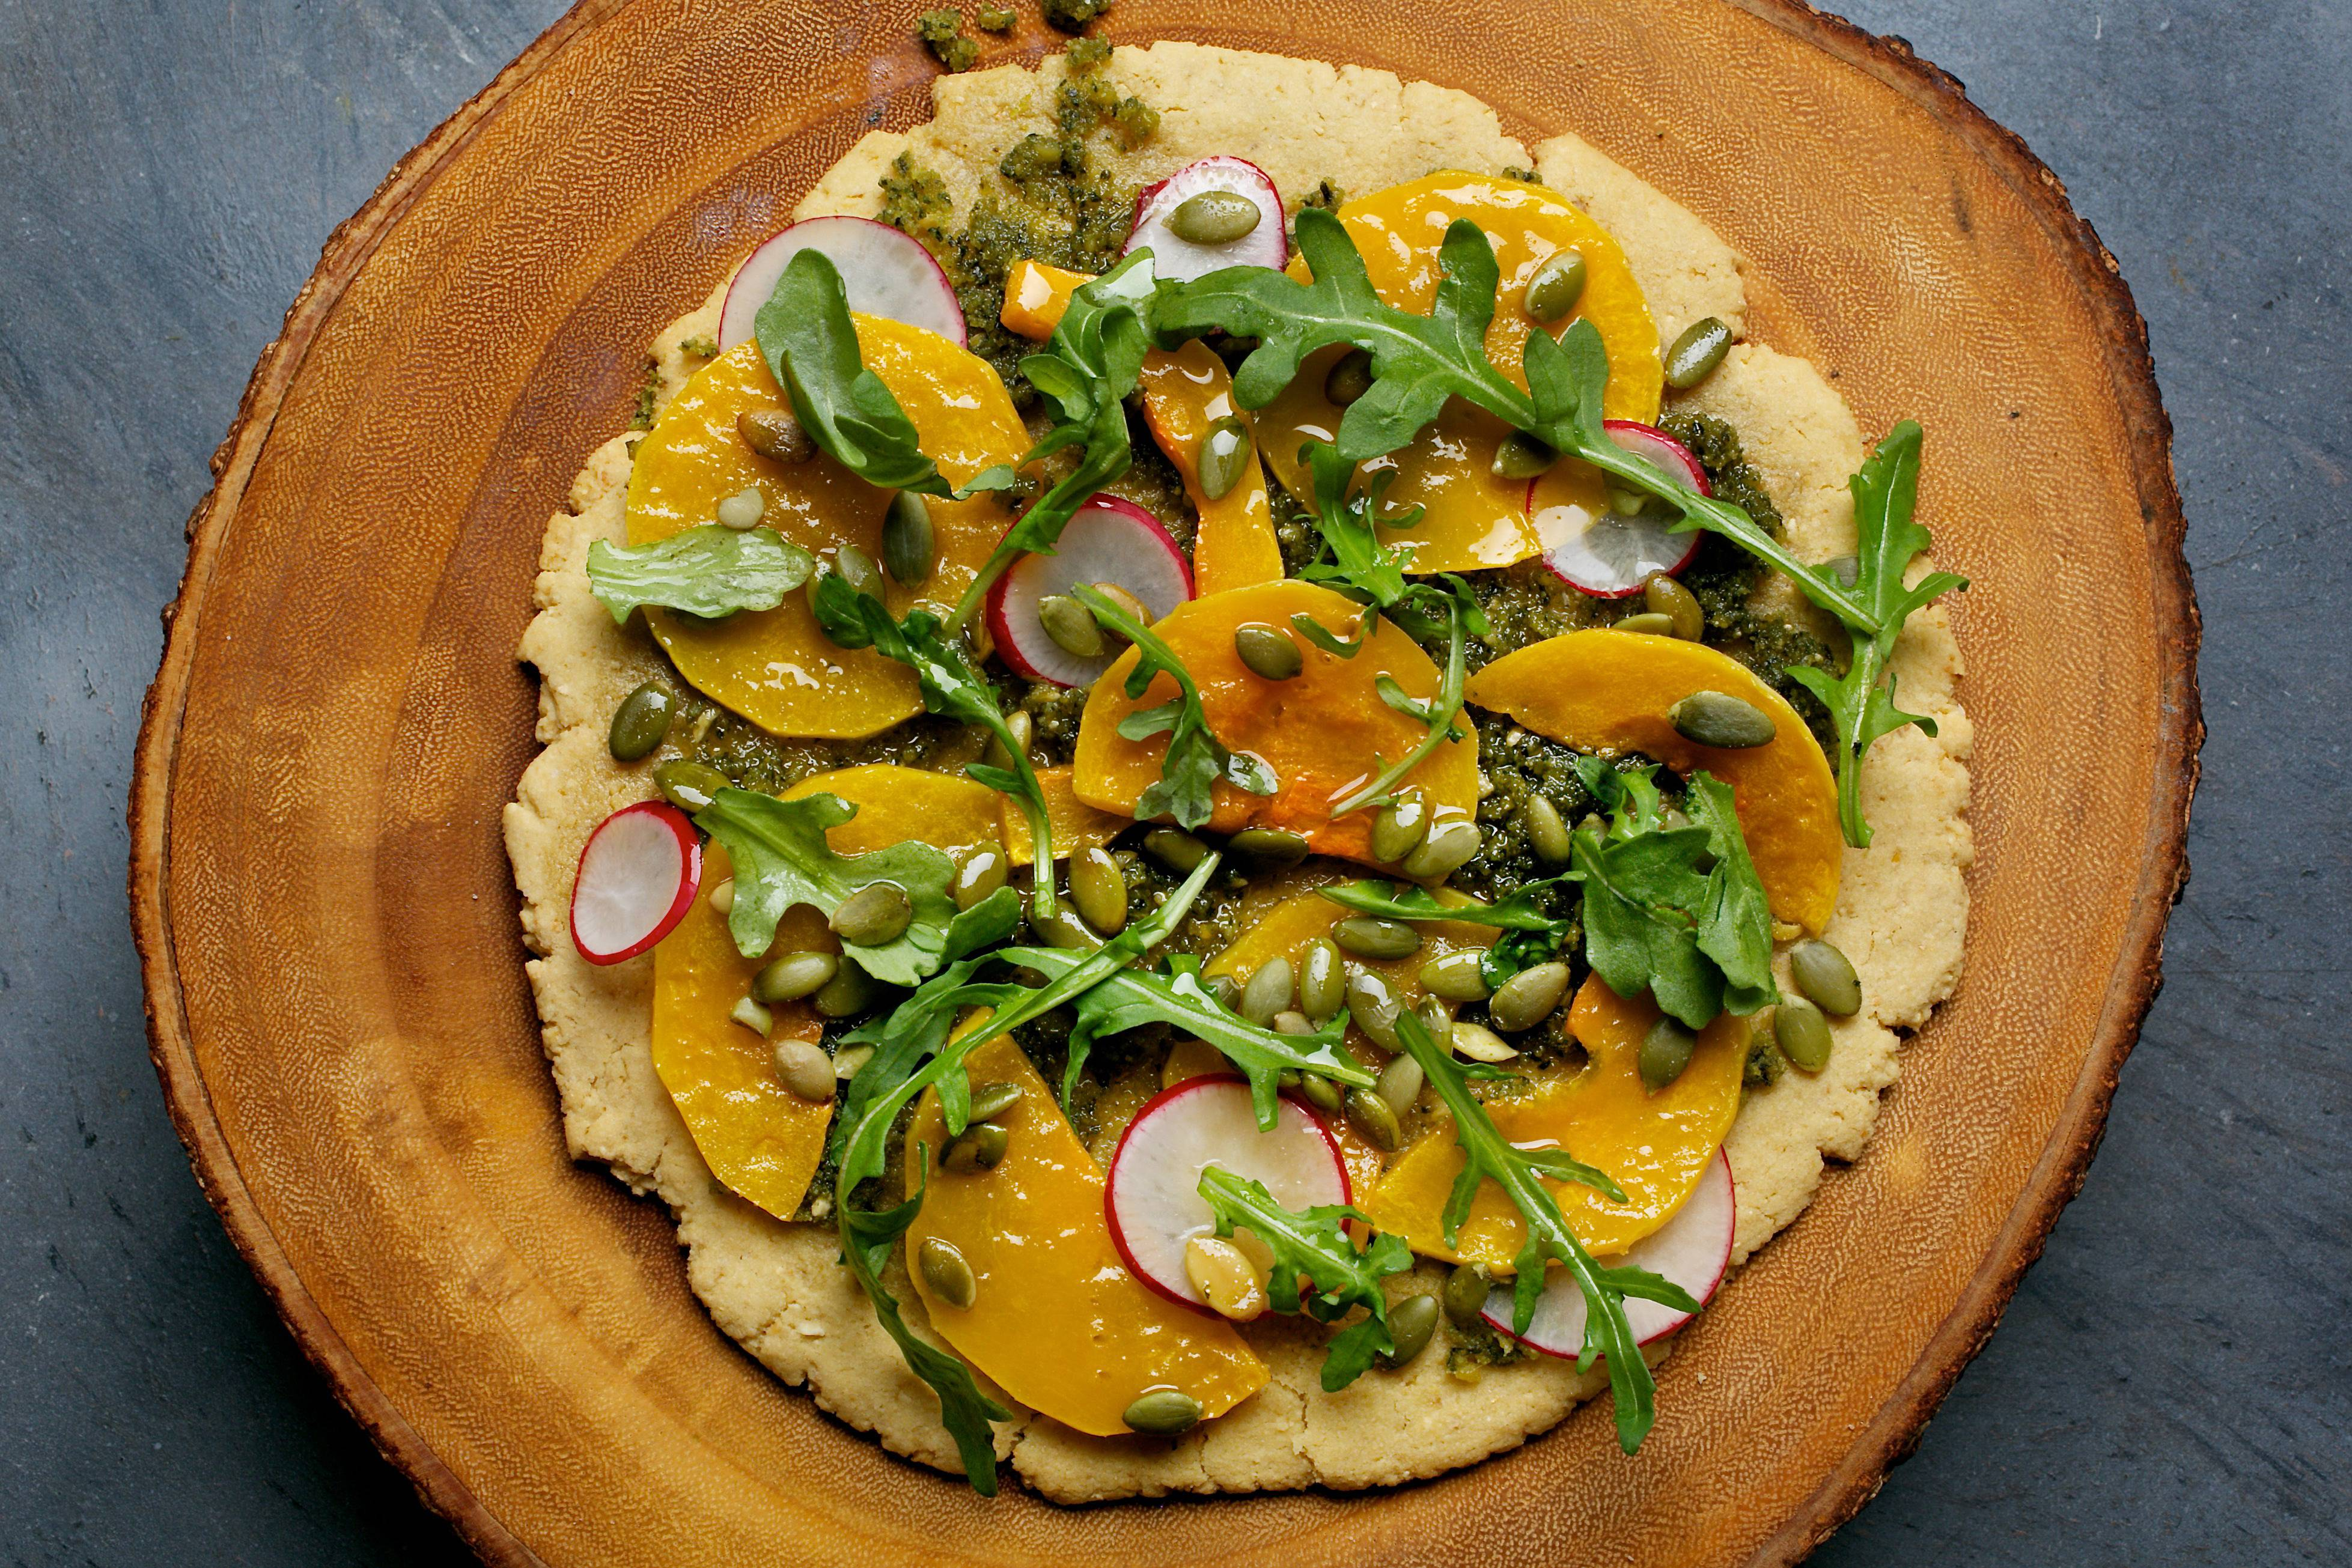 Feel free to replace the squash with the seasonal vegetables of your choice for Pesto Socca Pizza. See the recipe on Page 4.